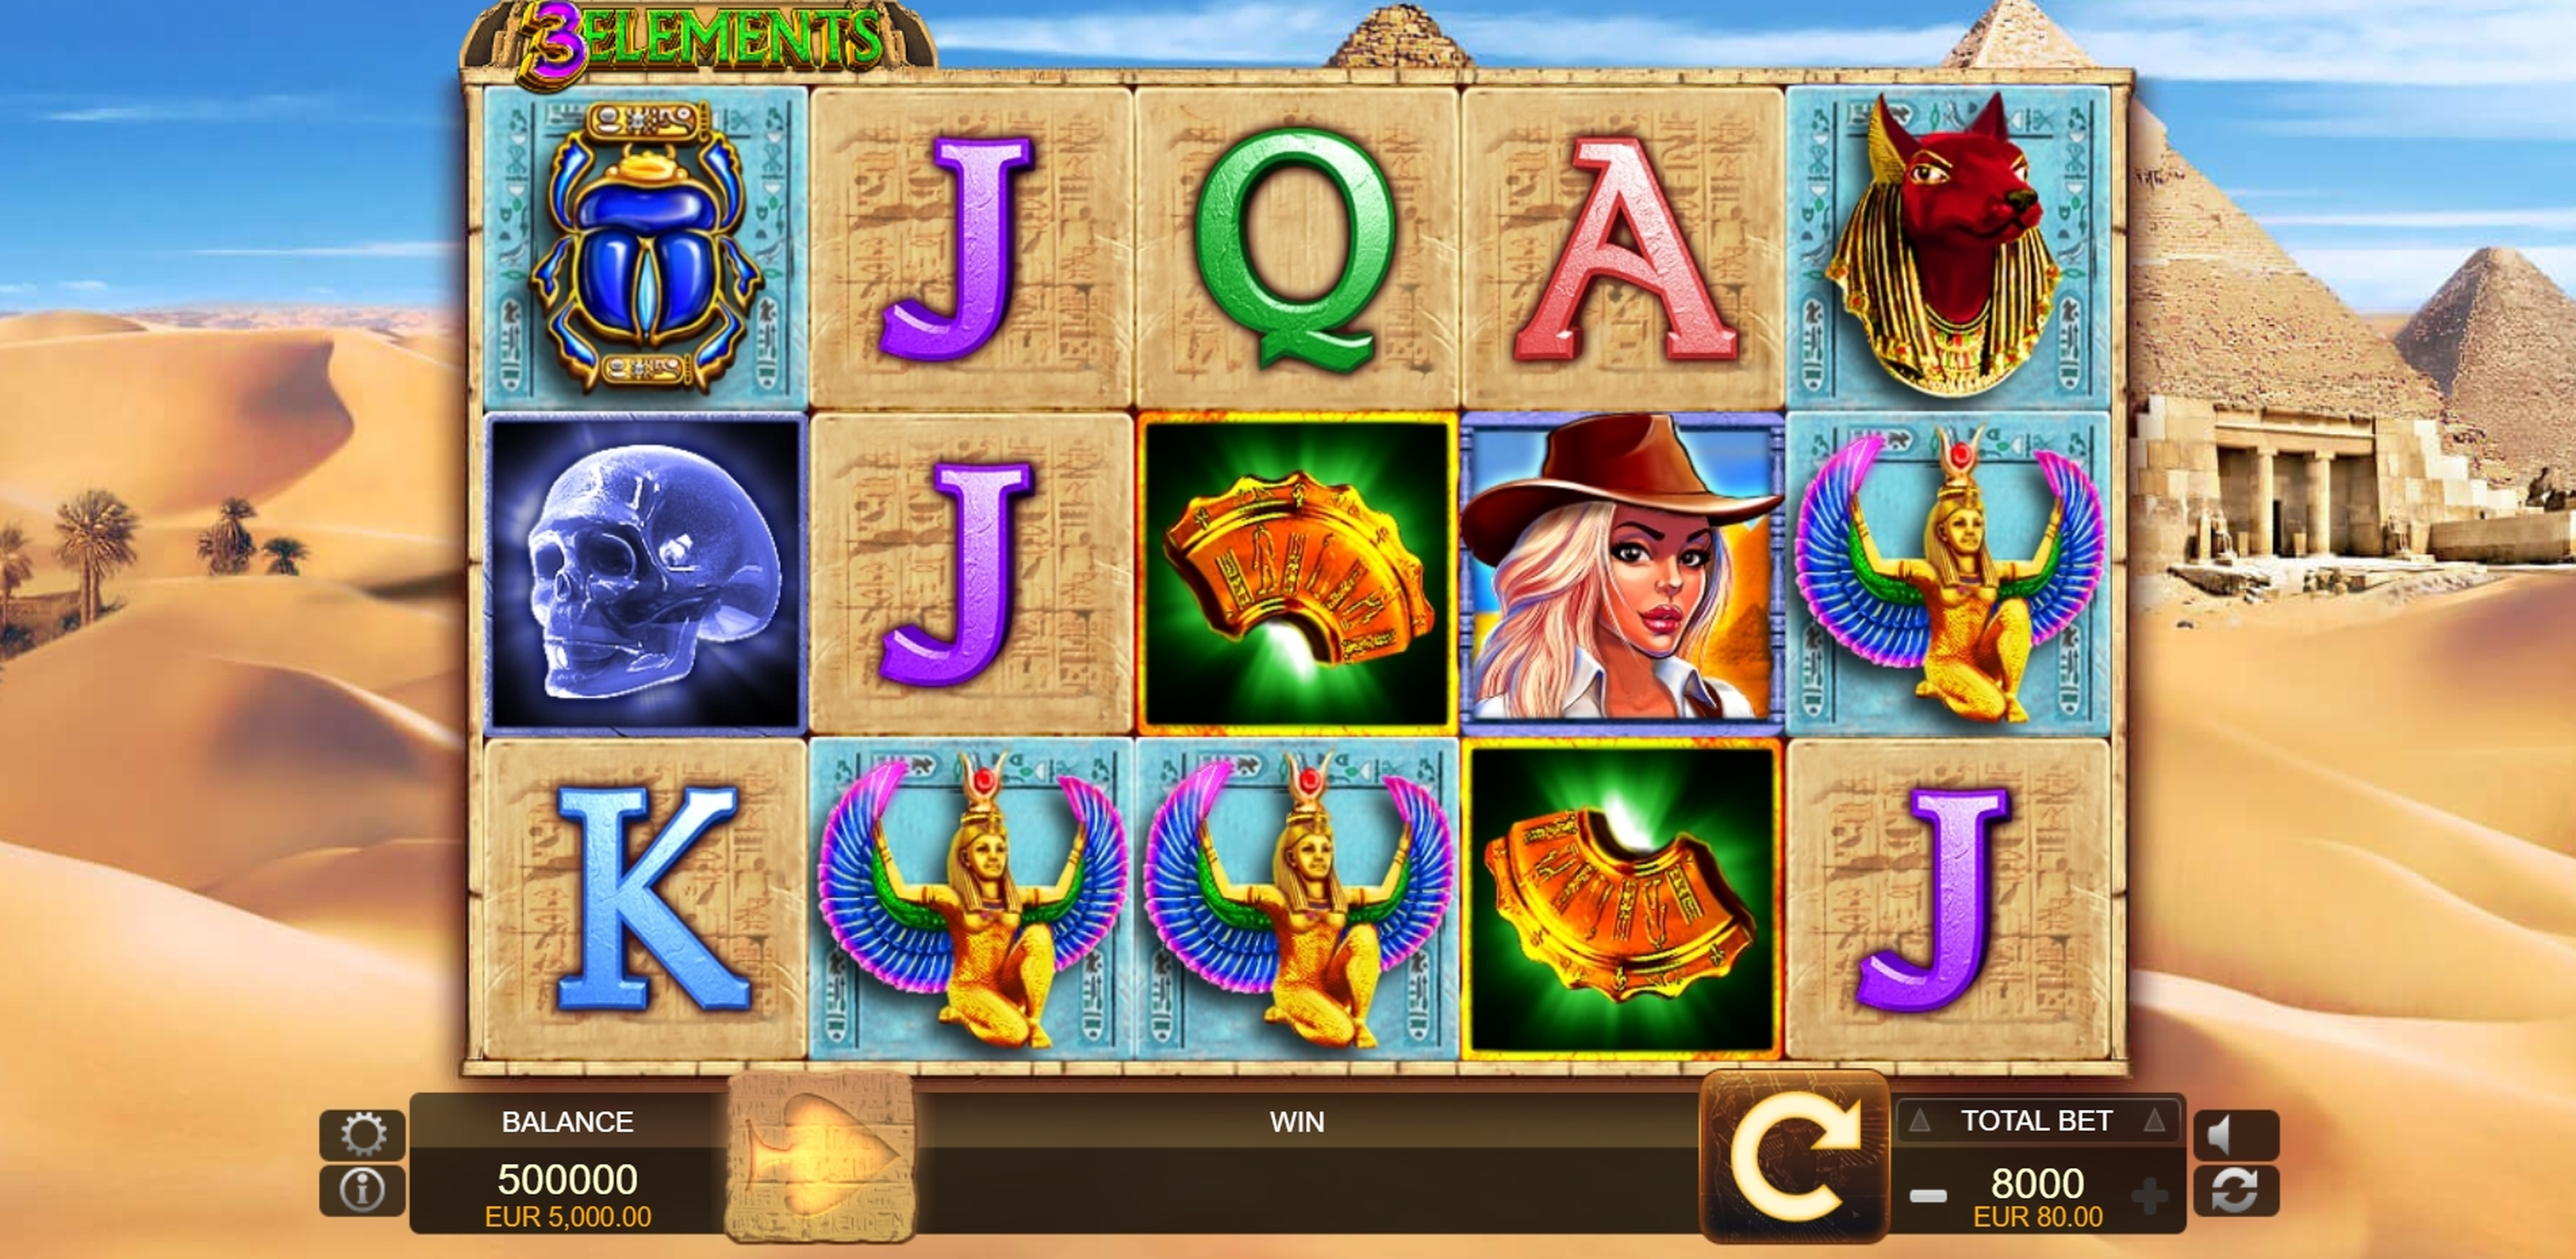 Reels in 3 Elements Slot Game by FUGA Gaming